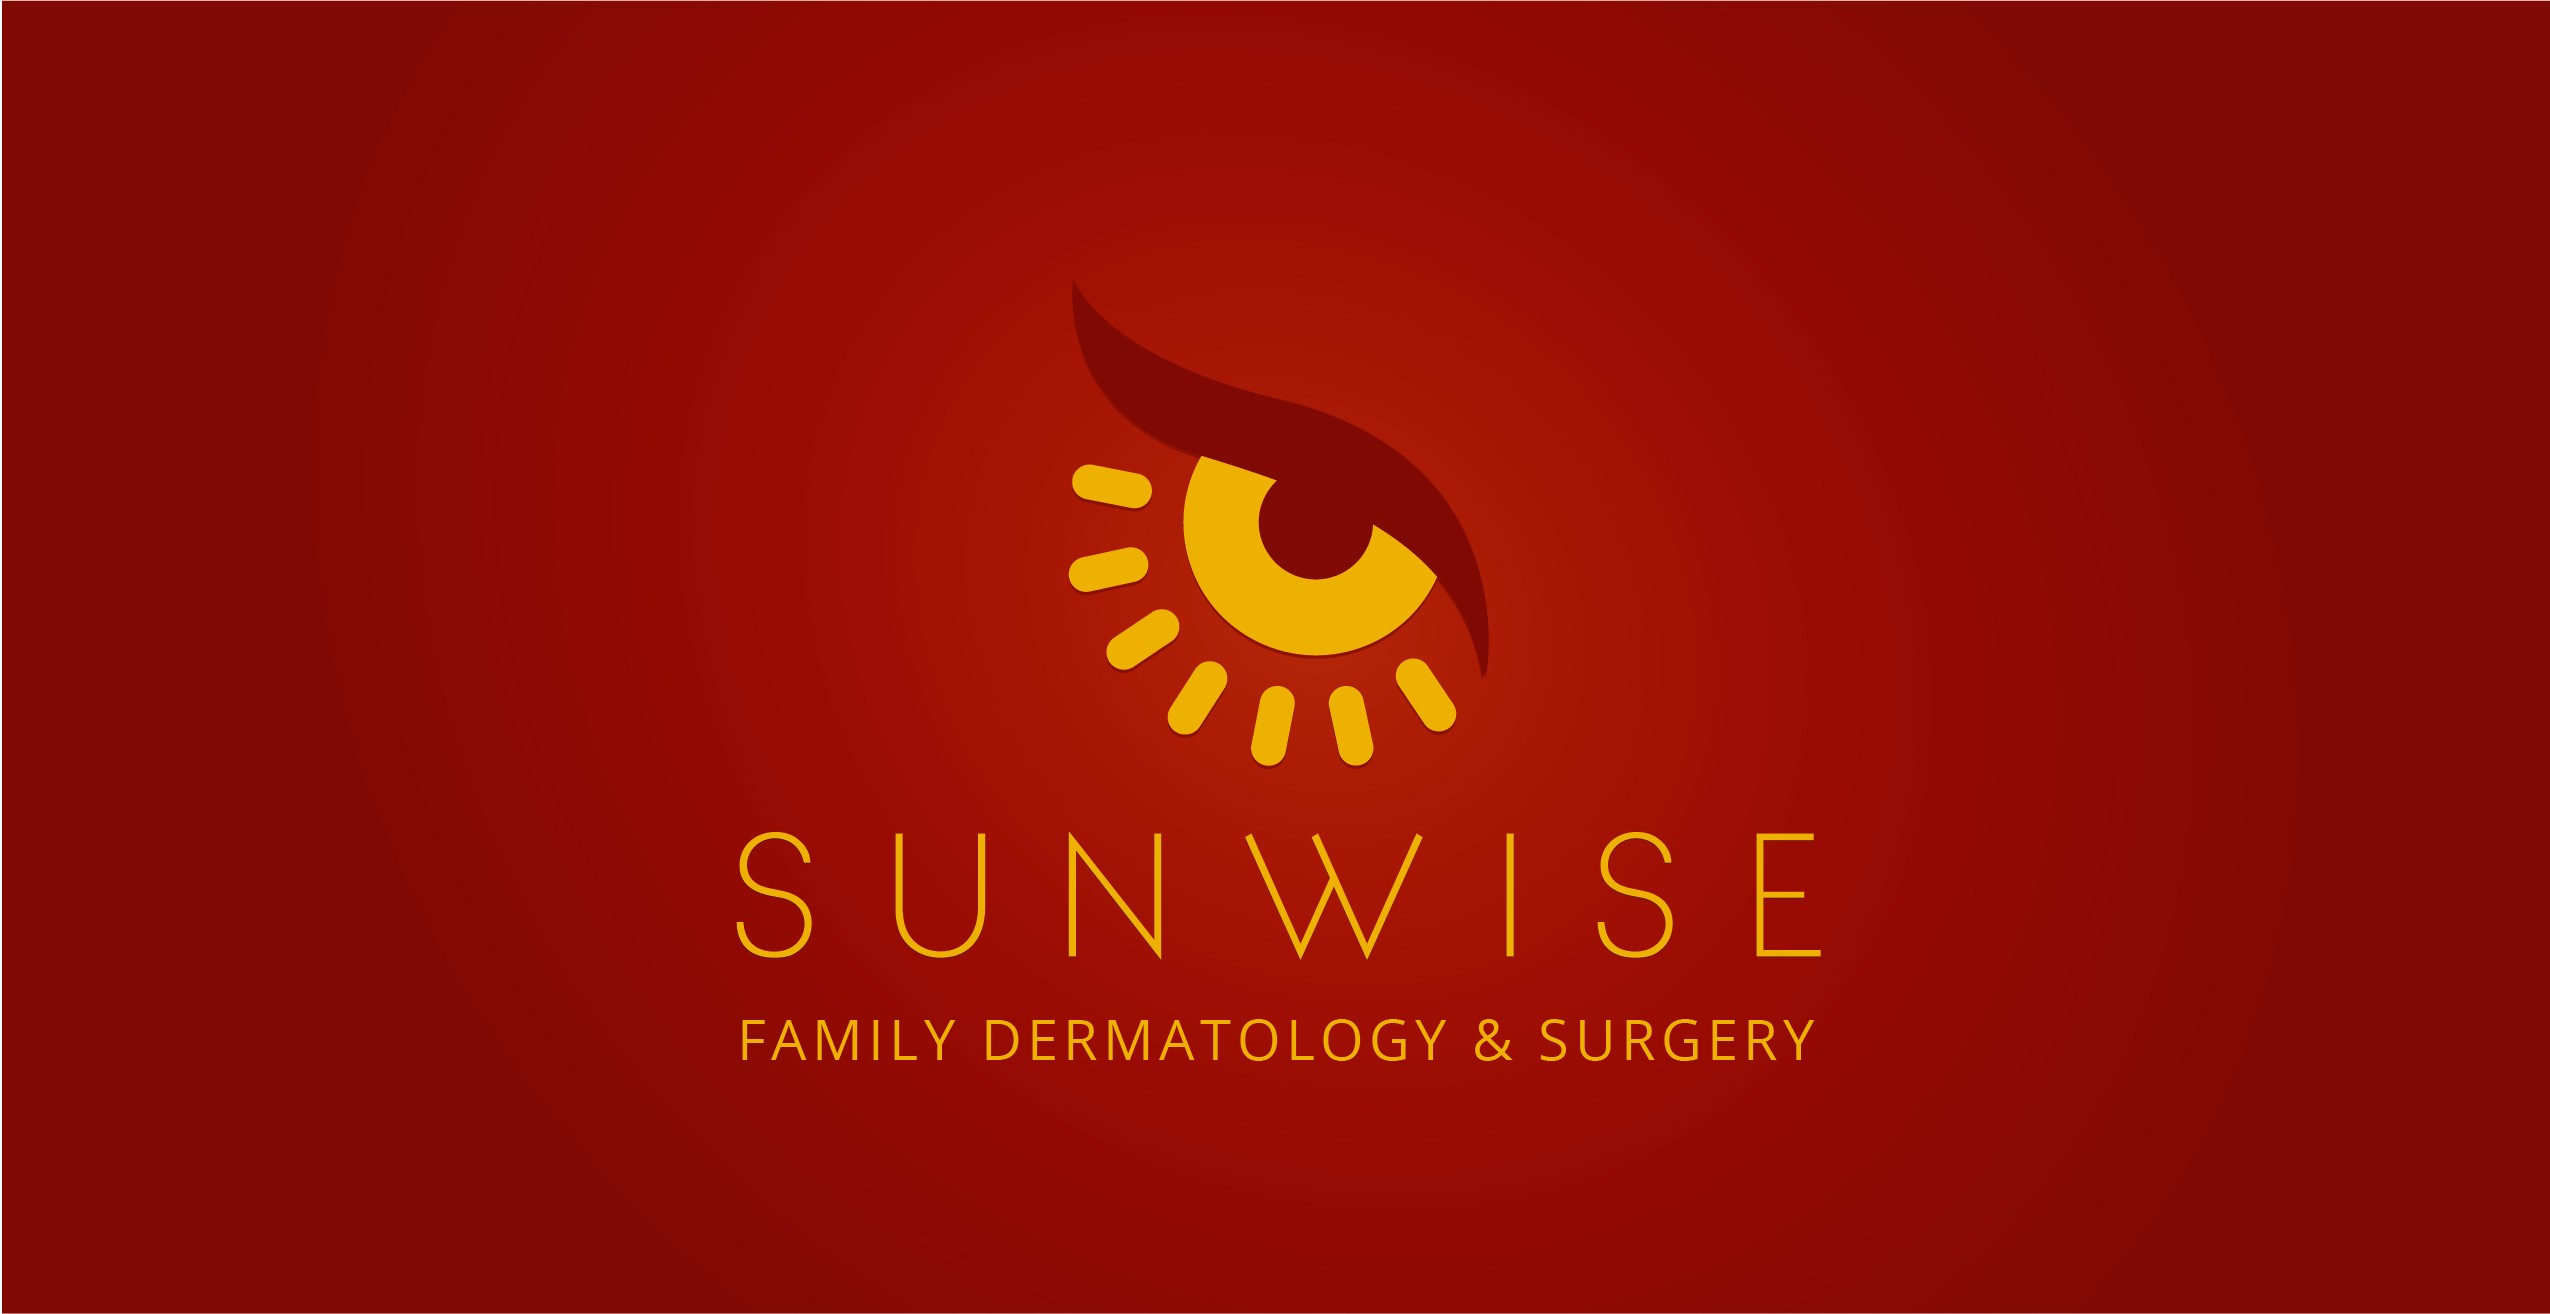 SunWise Family Dermatology & Surgery | LinkedIn